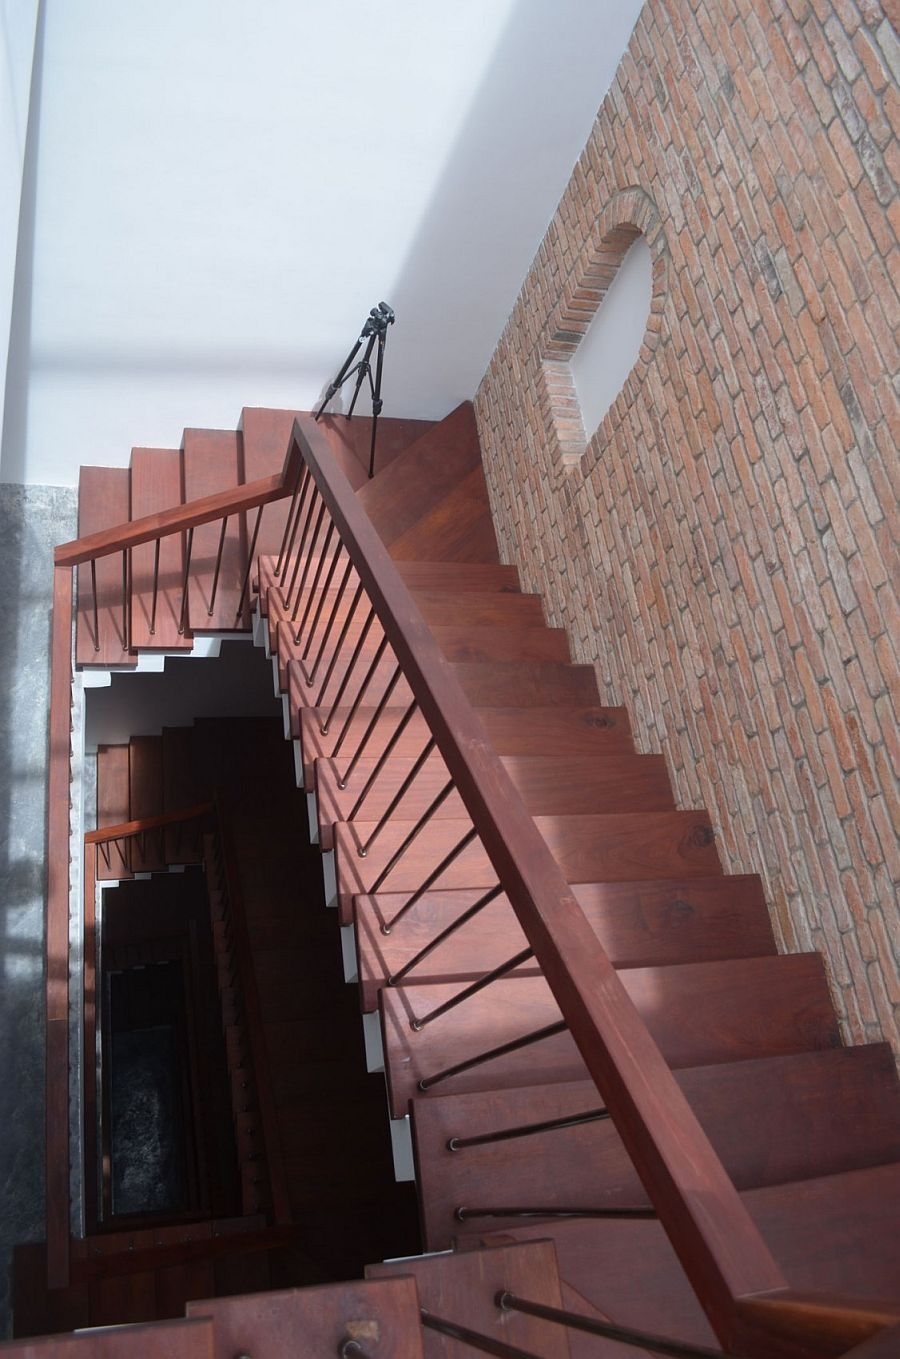 View of the staircase from the top level